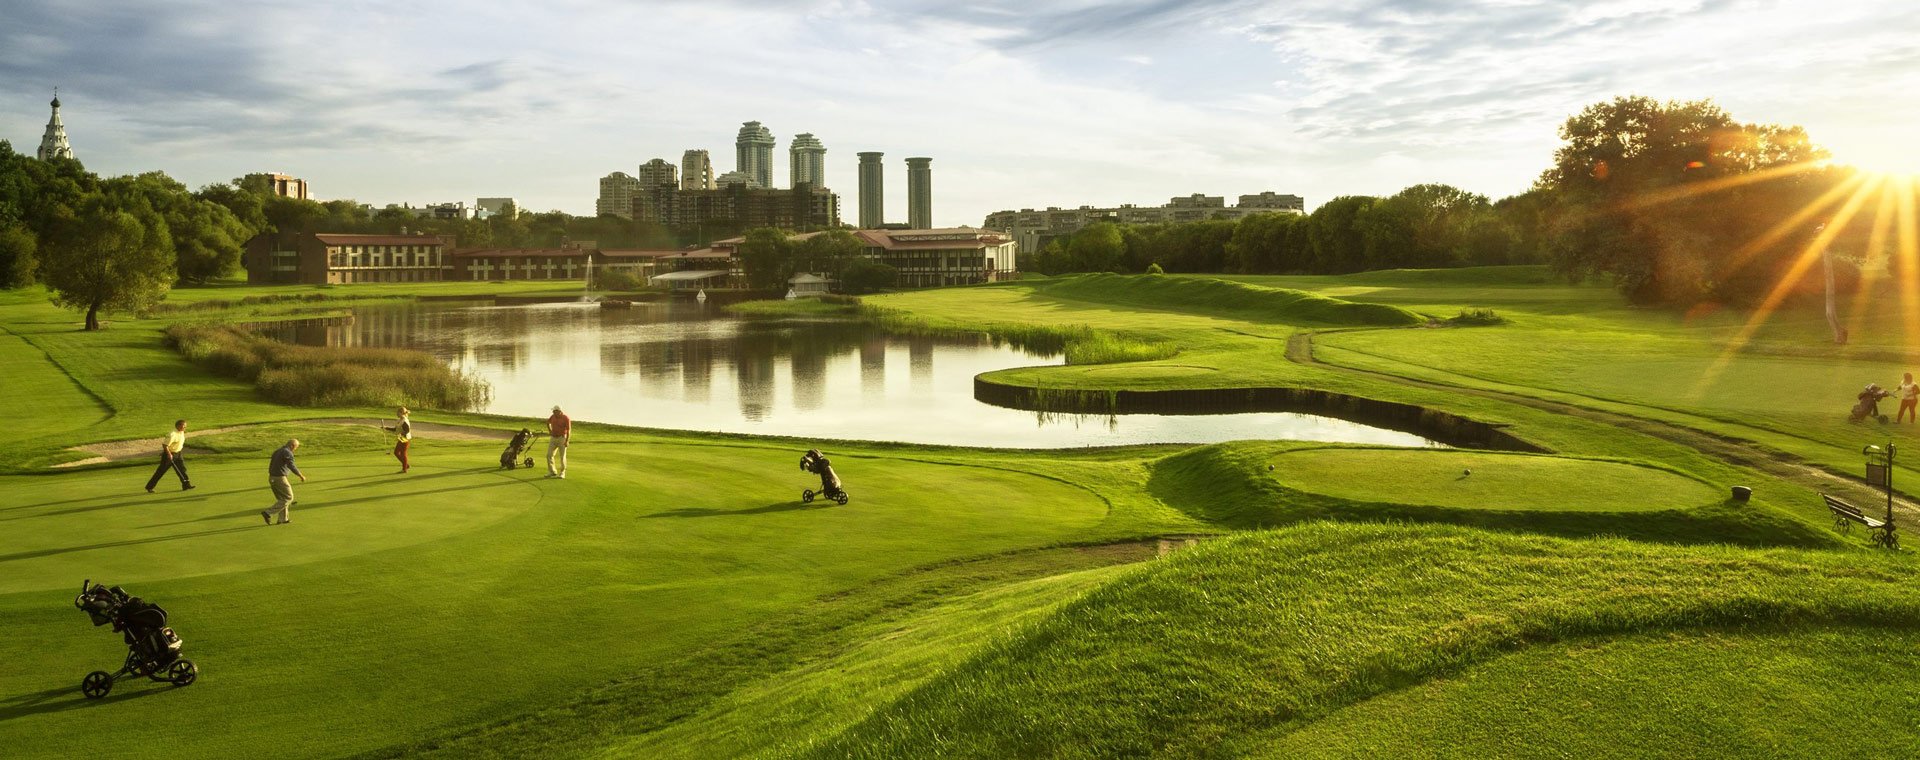 golfers The international golf federation (igf) was founded in 1958 to encourage the international development of the game and to employ golf as a vehicle to foster friendship and sportsmanship.